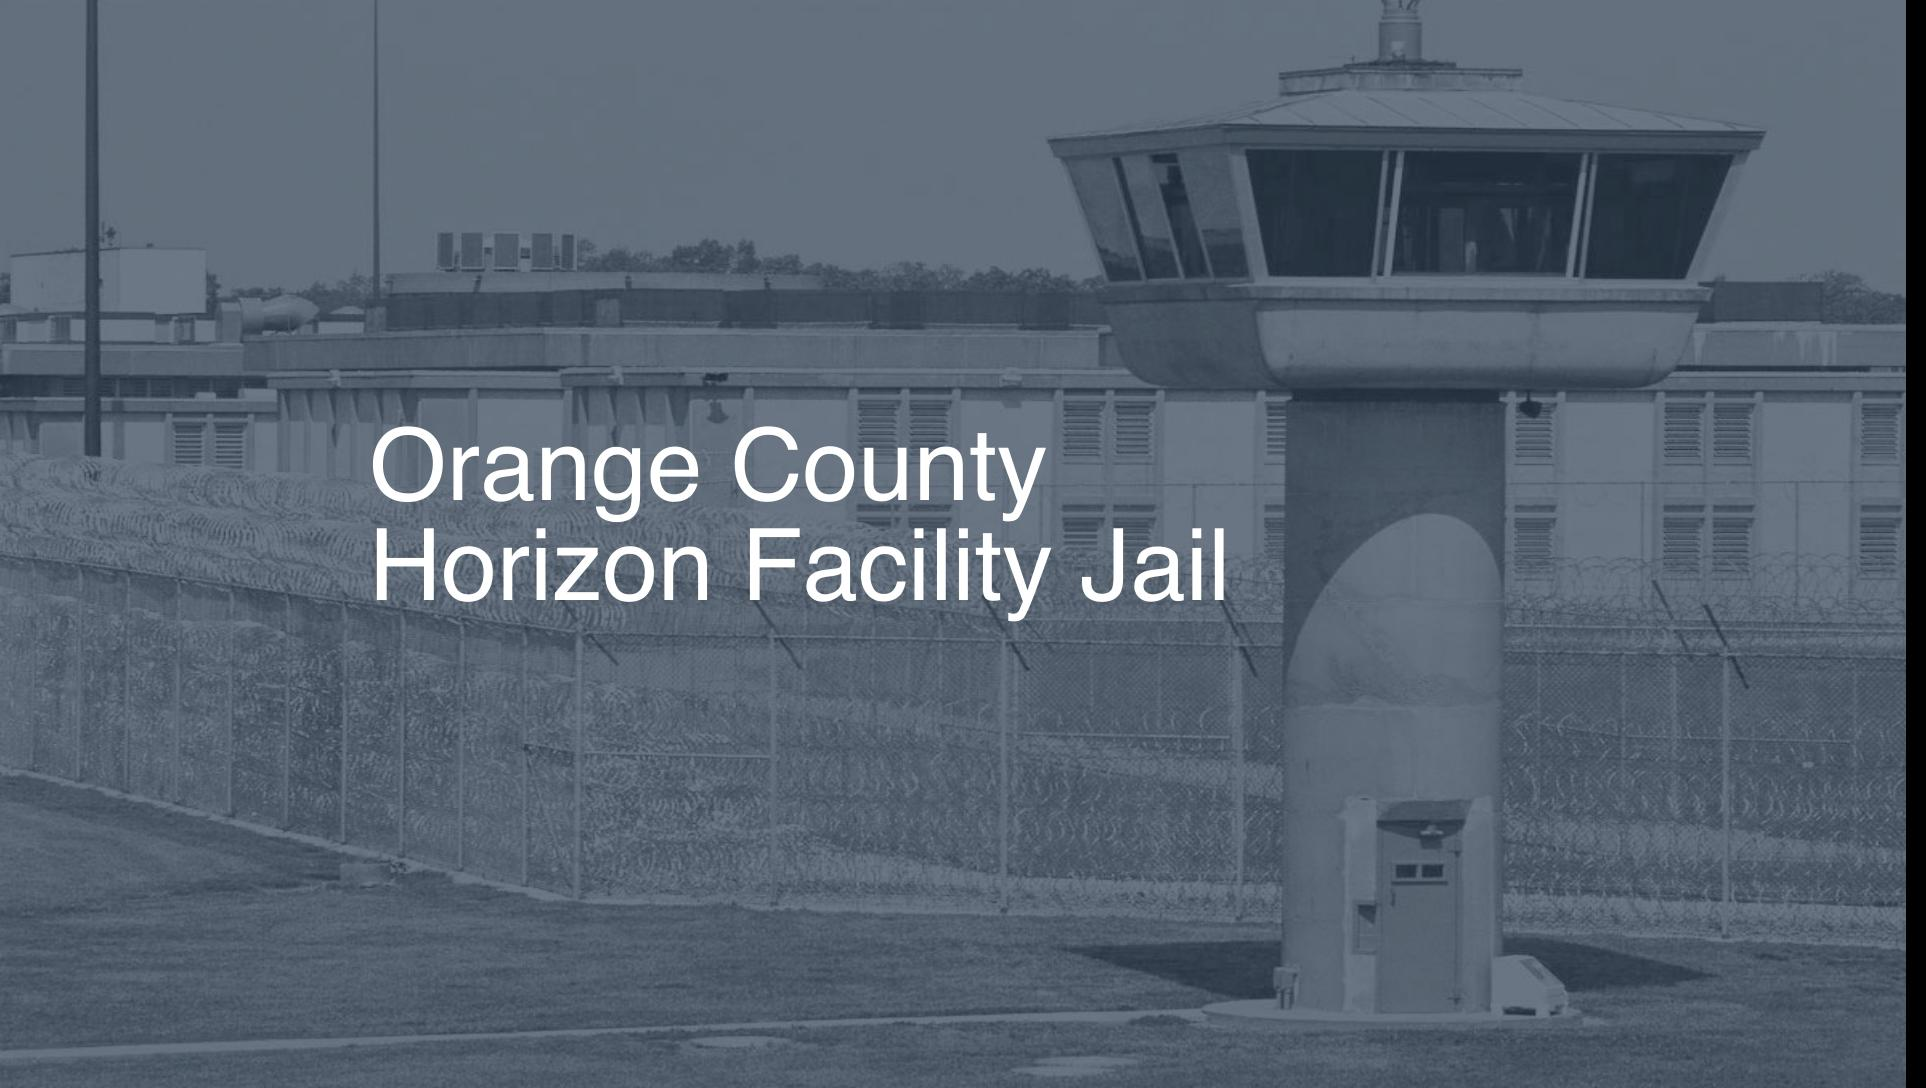 Orange County Horizon Facility Jail correctional facility picture